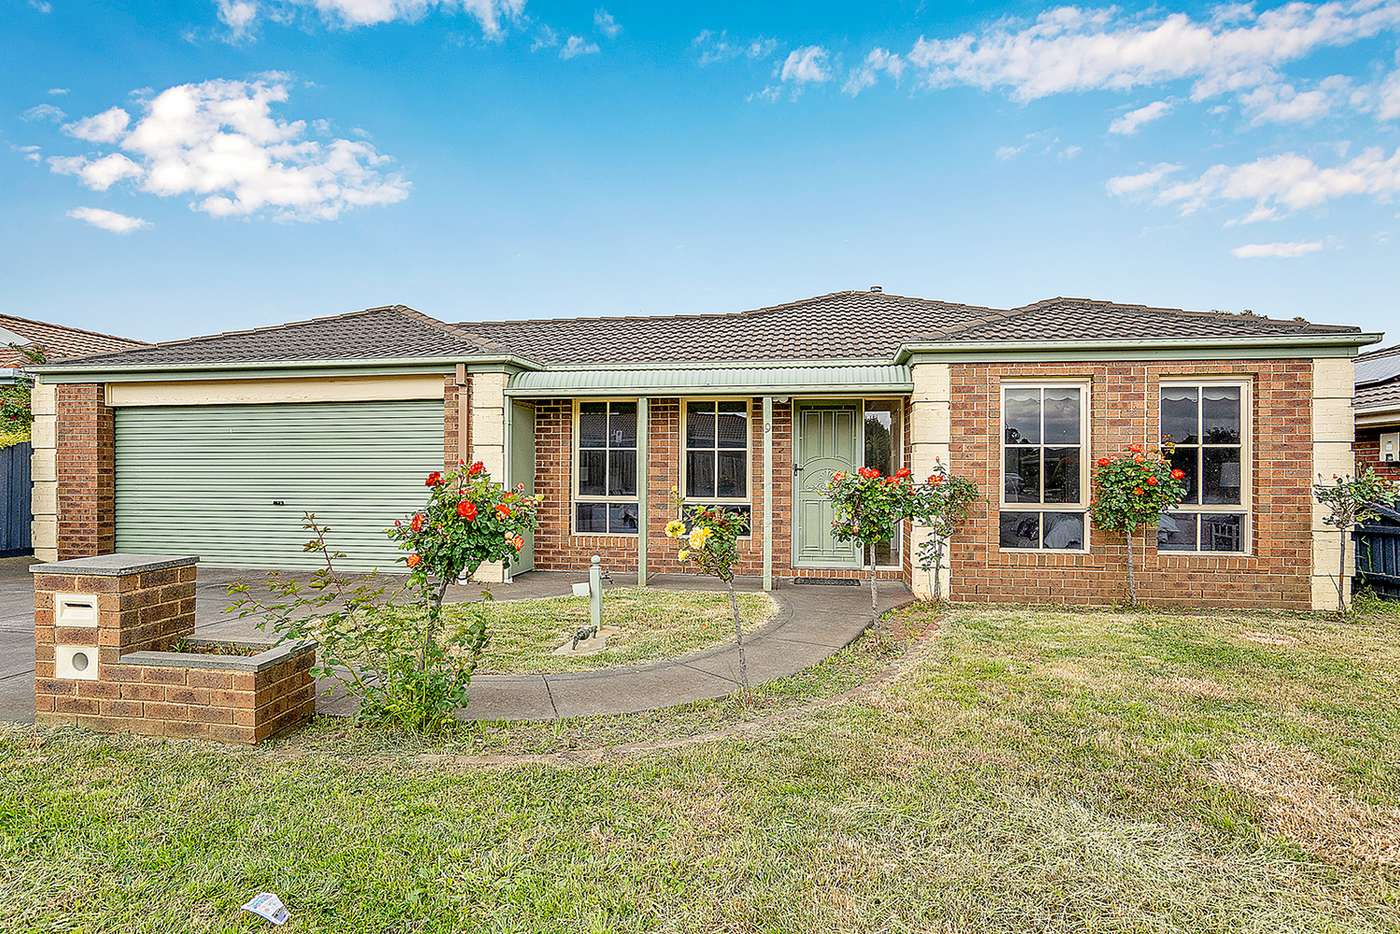 Main view of Homely house listing, 9 Belsay Place, Craigieburn VIC 3064